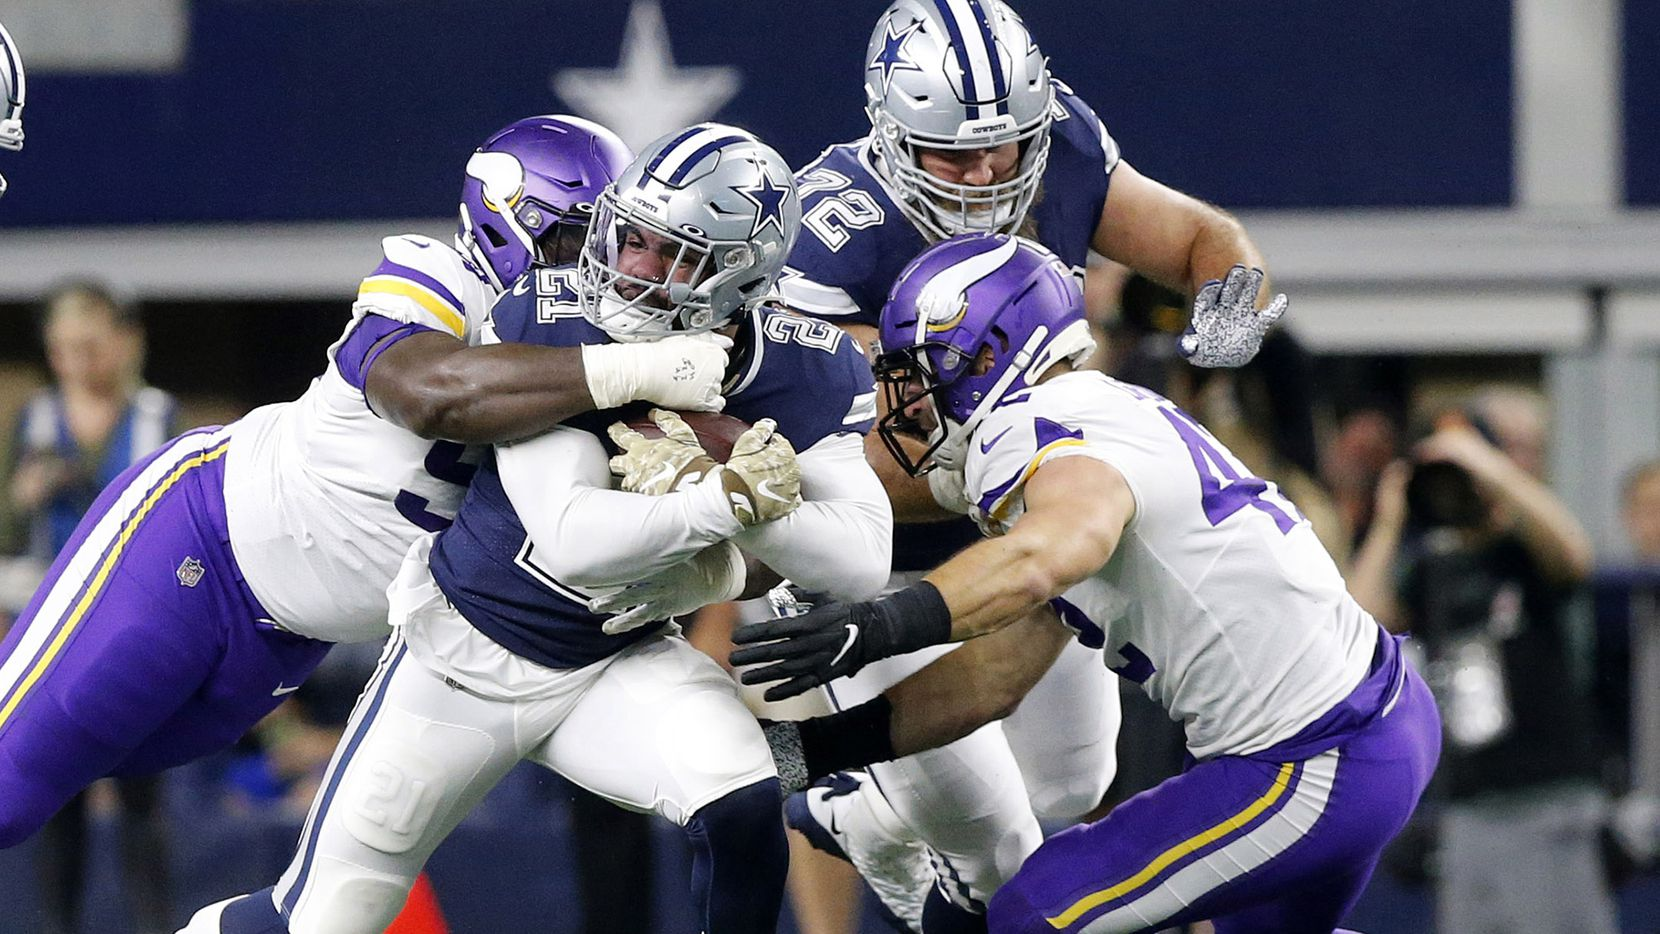 Dallas Cowboys running back Ezekiel Elliott (21) is tackled by the Minnesota Vikings defense during the first quarter on Sunday, Nov. 10, 2019 at AT&T Stadium in Arlington, Texas. (Tom Fox/The Dallas Morning News/TNS)